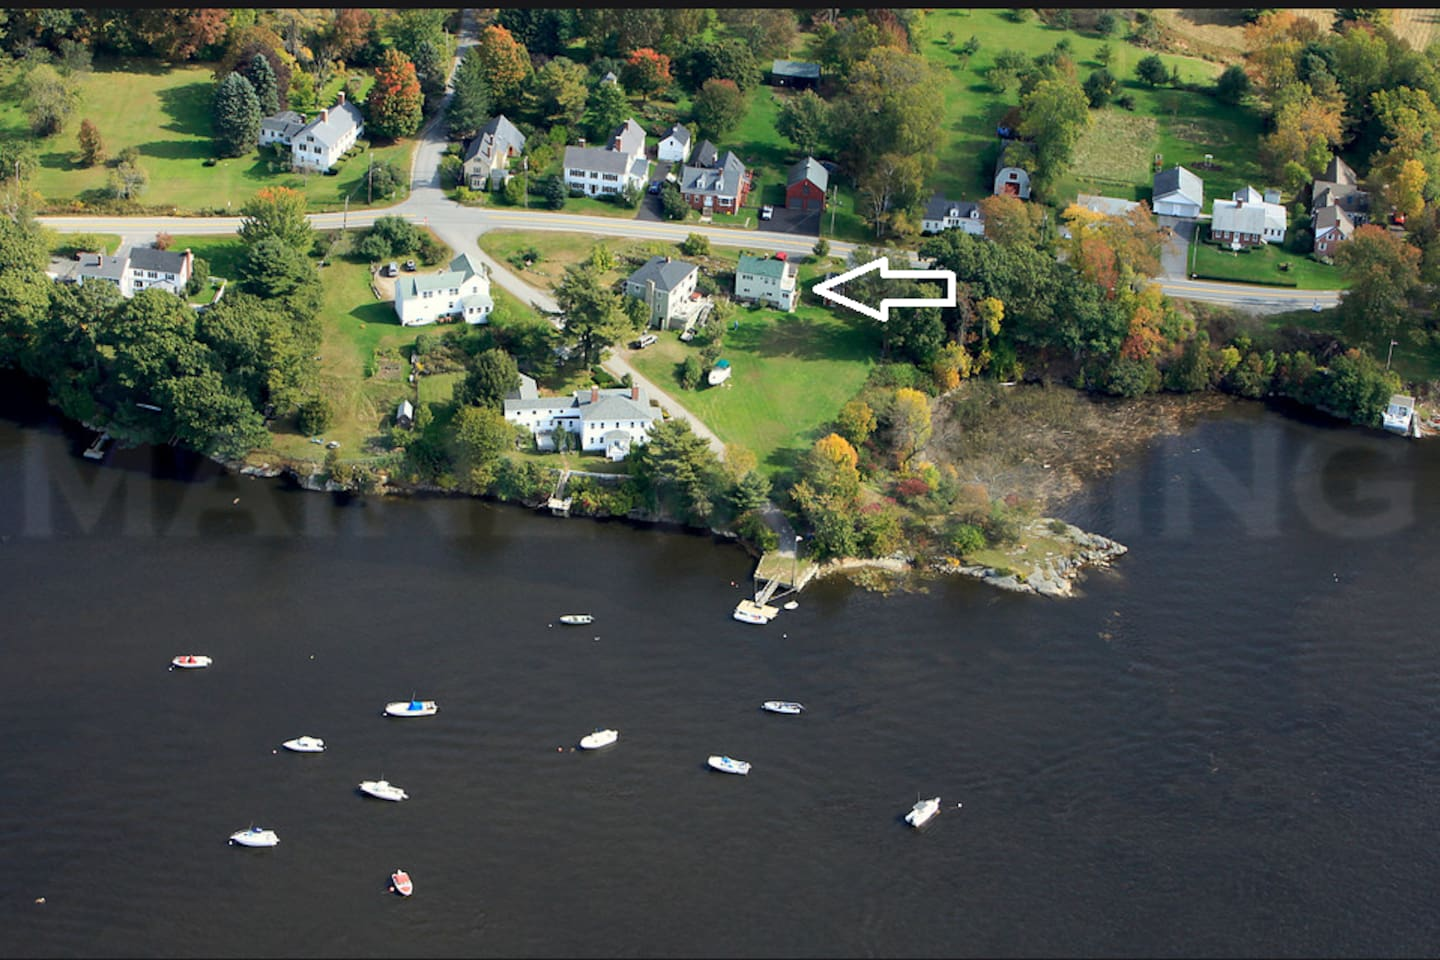 Days Ferry Village from above (the little house noted)